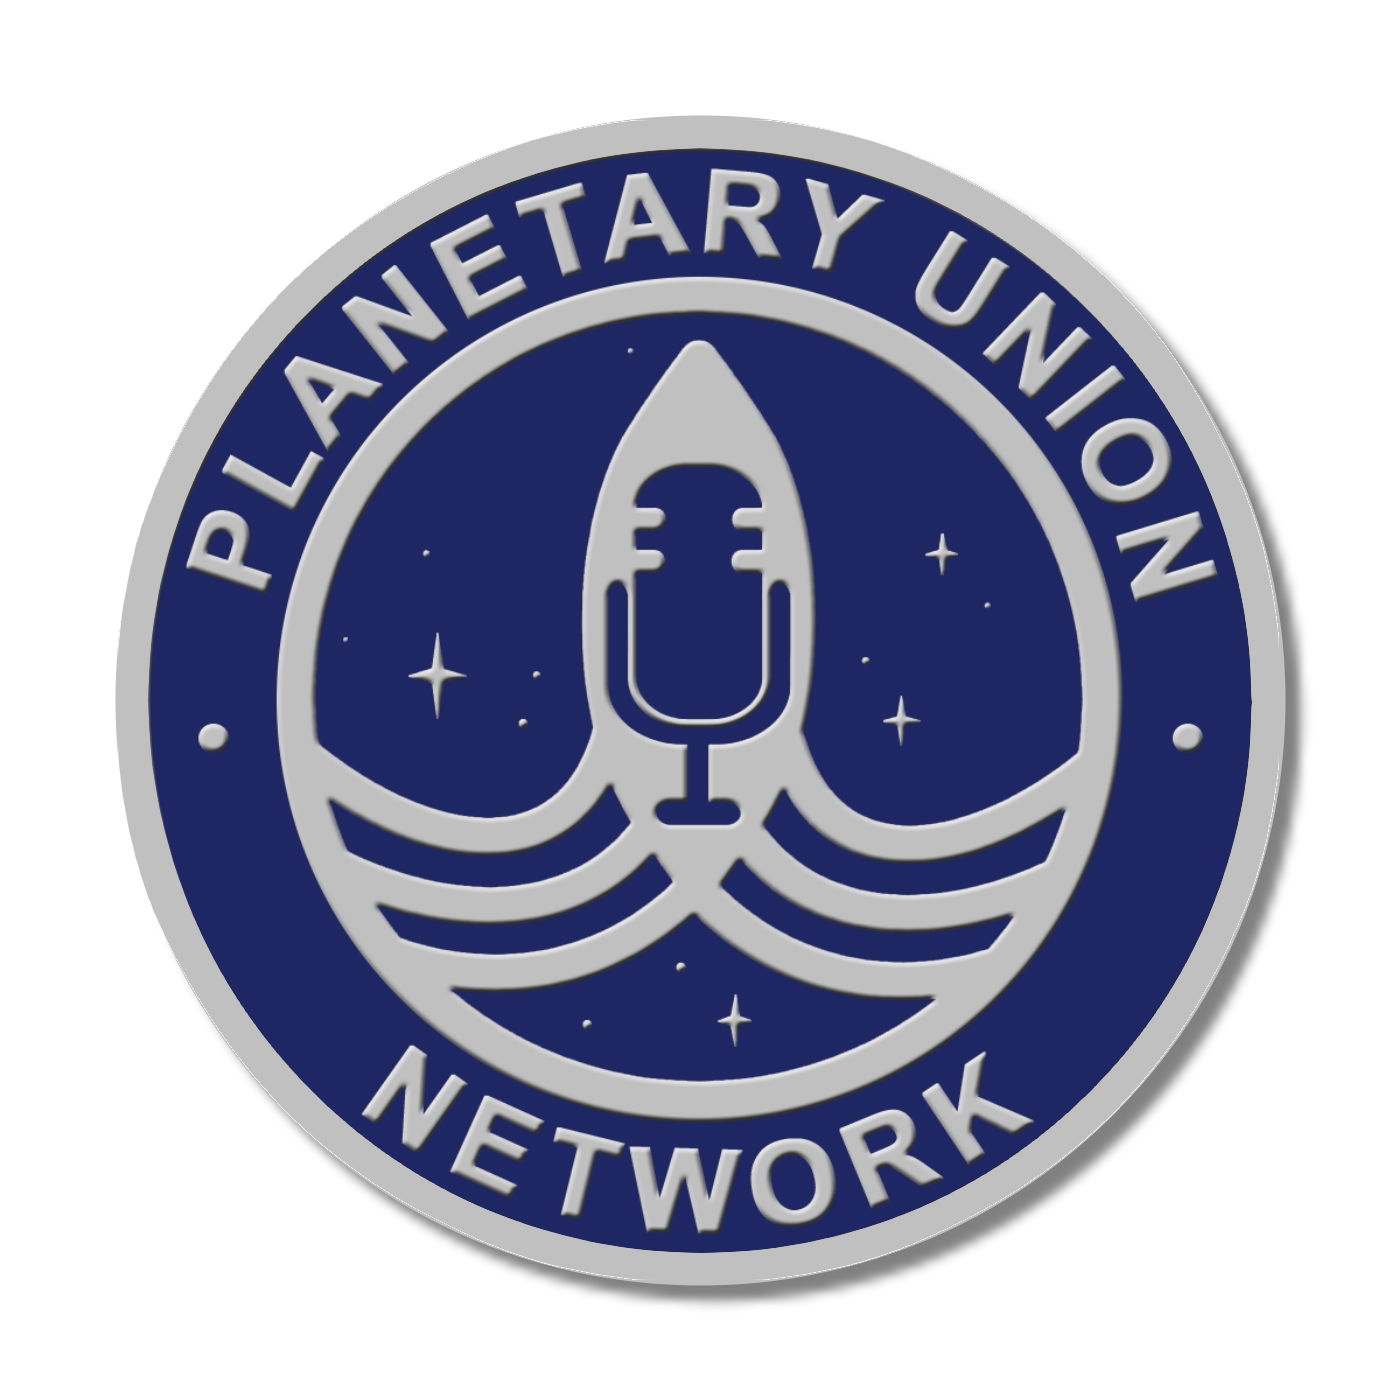 Artwork for podcast Planetary Union Network: The Orville Official Podcast